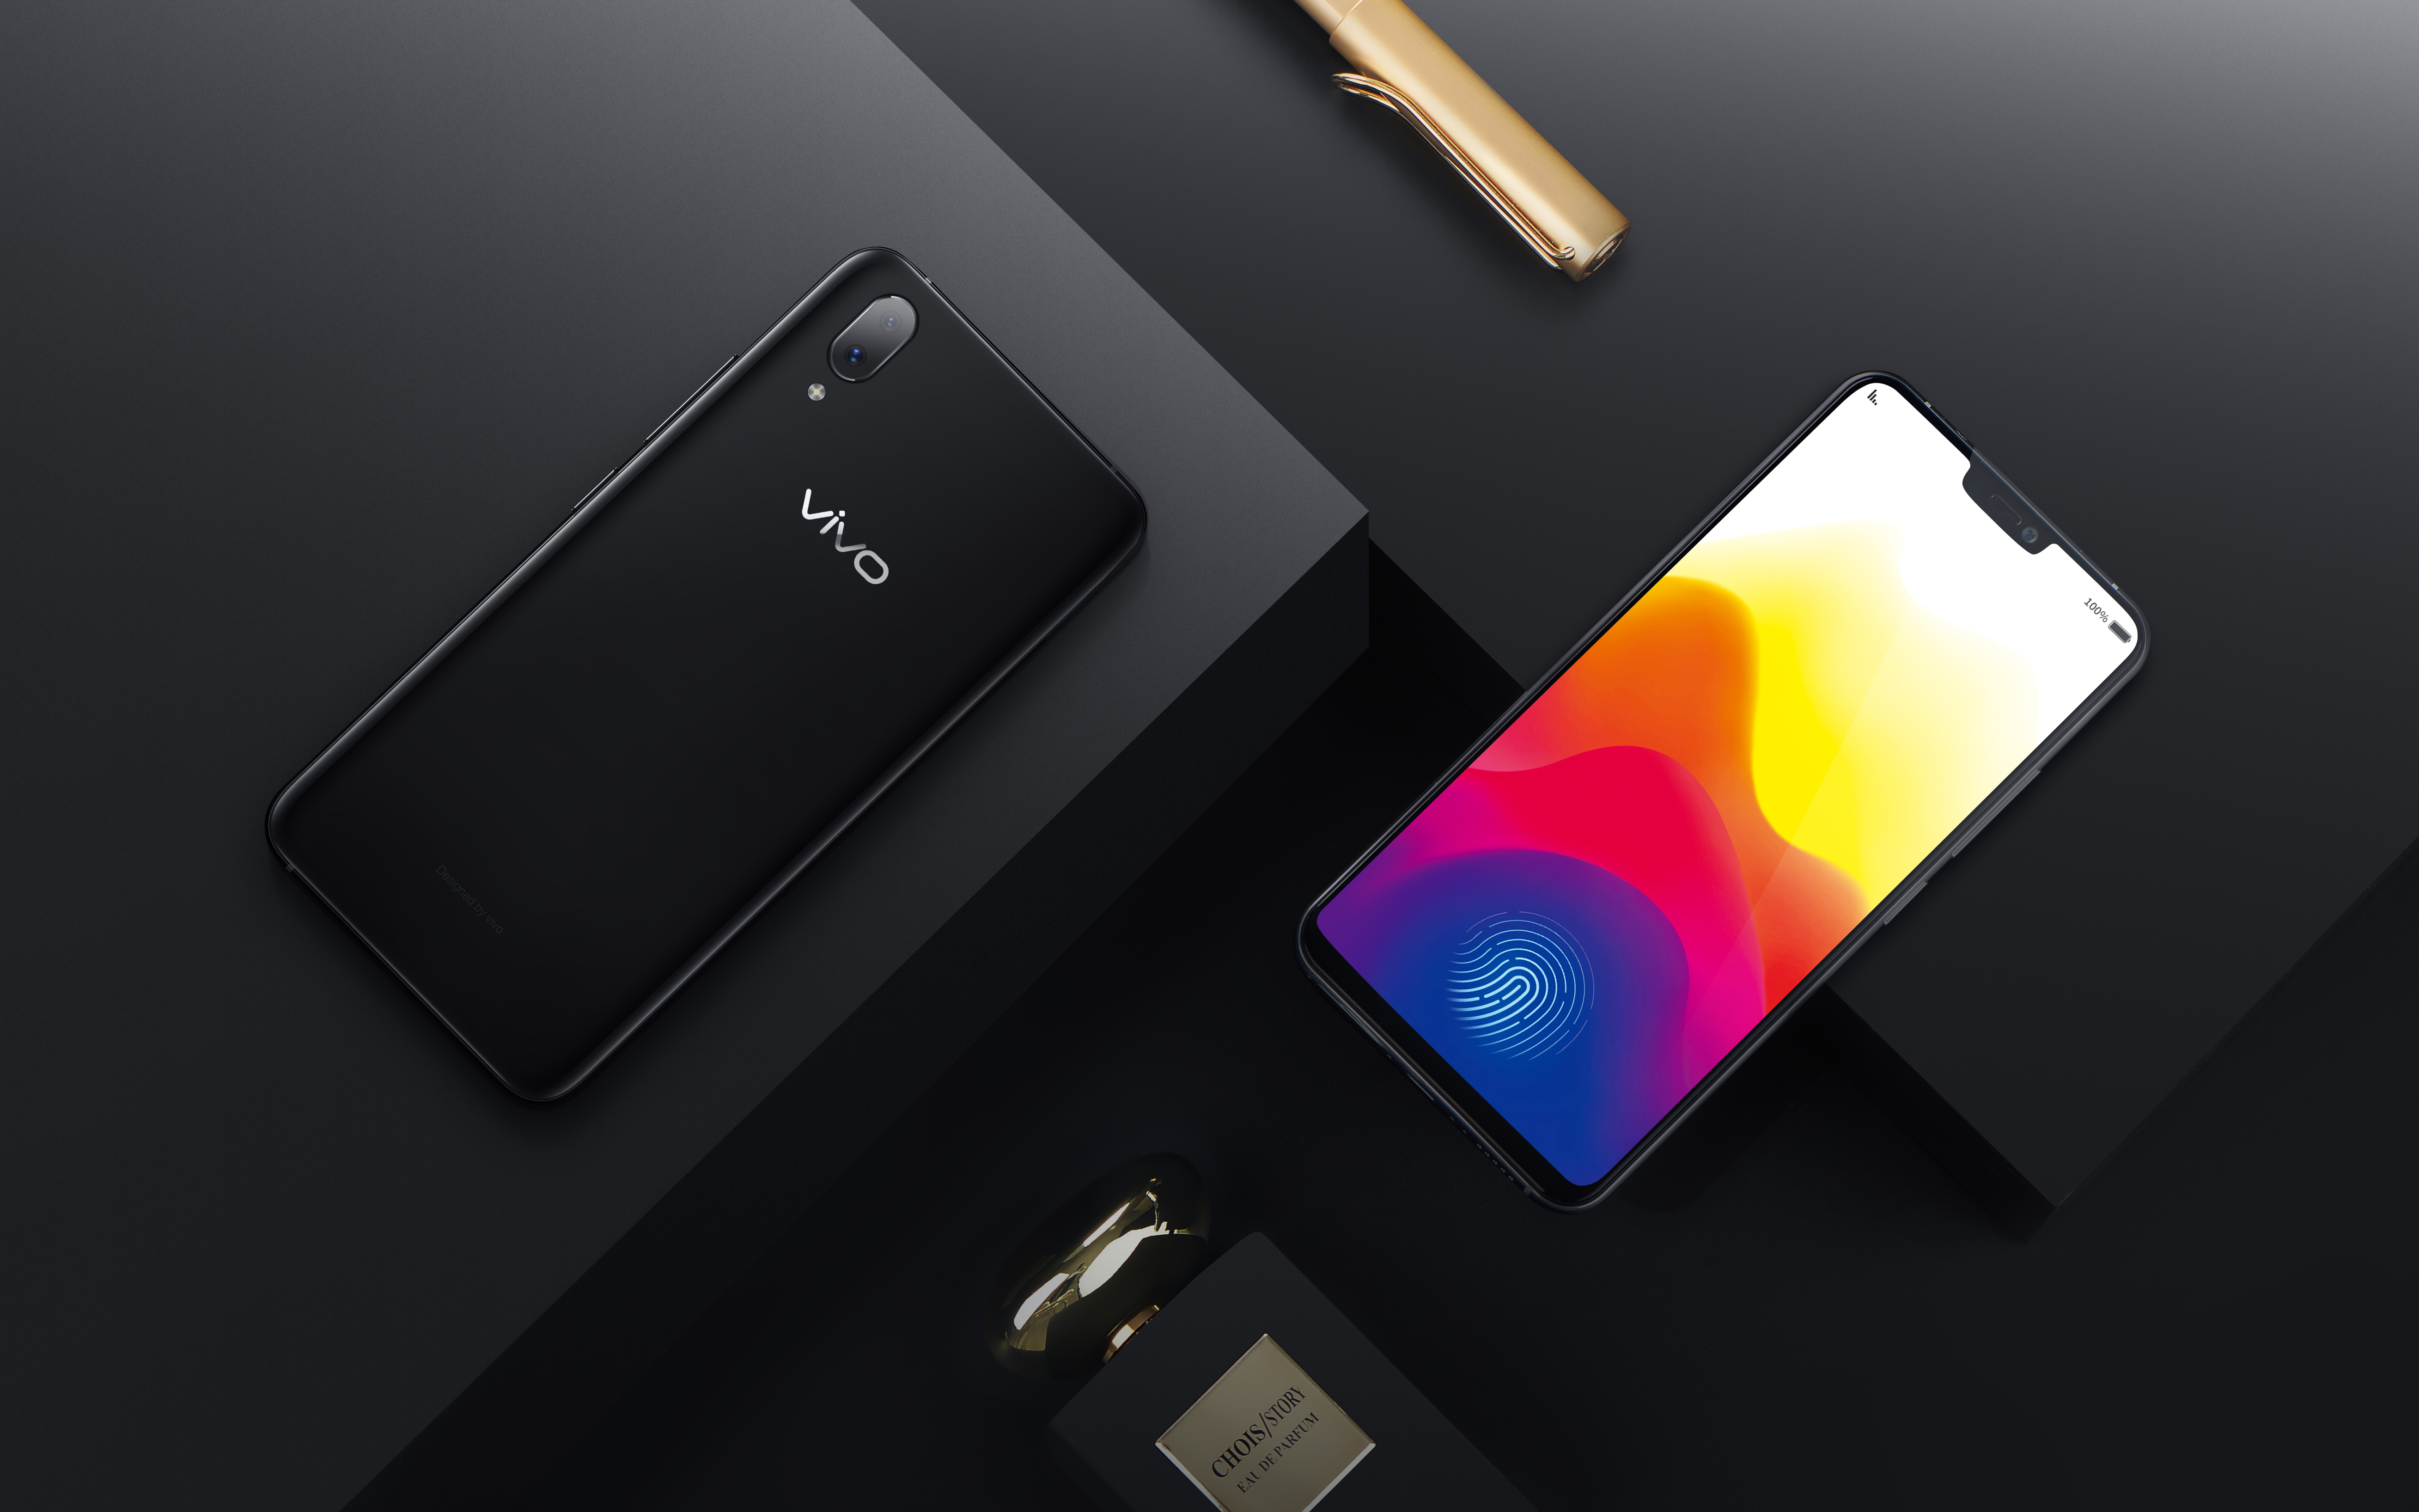 Real life Vivo X21 review: I used it for a week and here are my thoughts - Alvinology